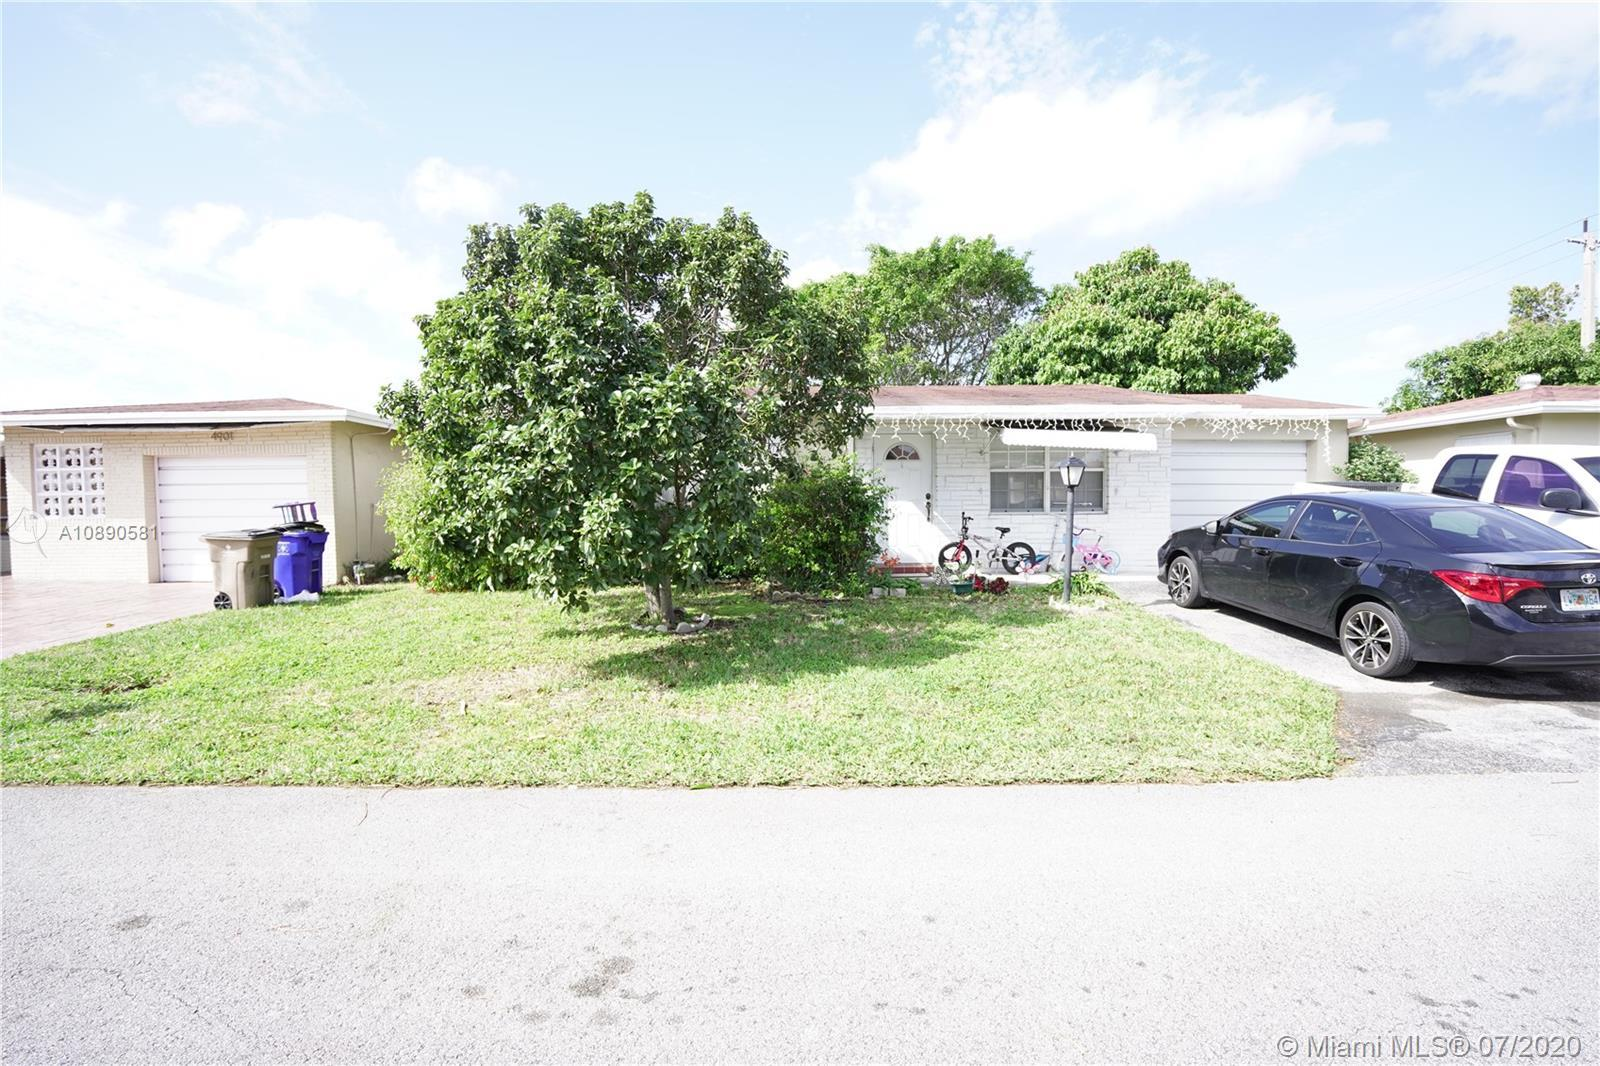 Perfect Deerfield Beach starter home in a beautiful, safe community close to 95, the sawgrass, and t